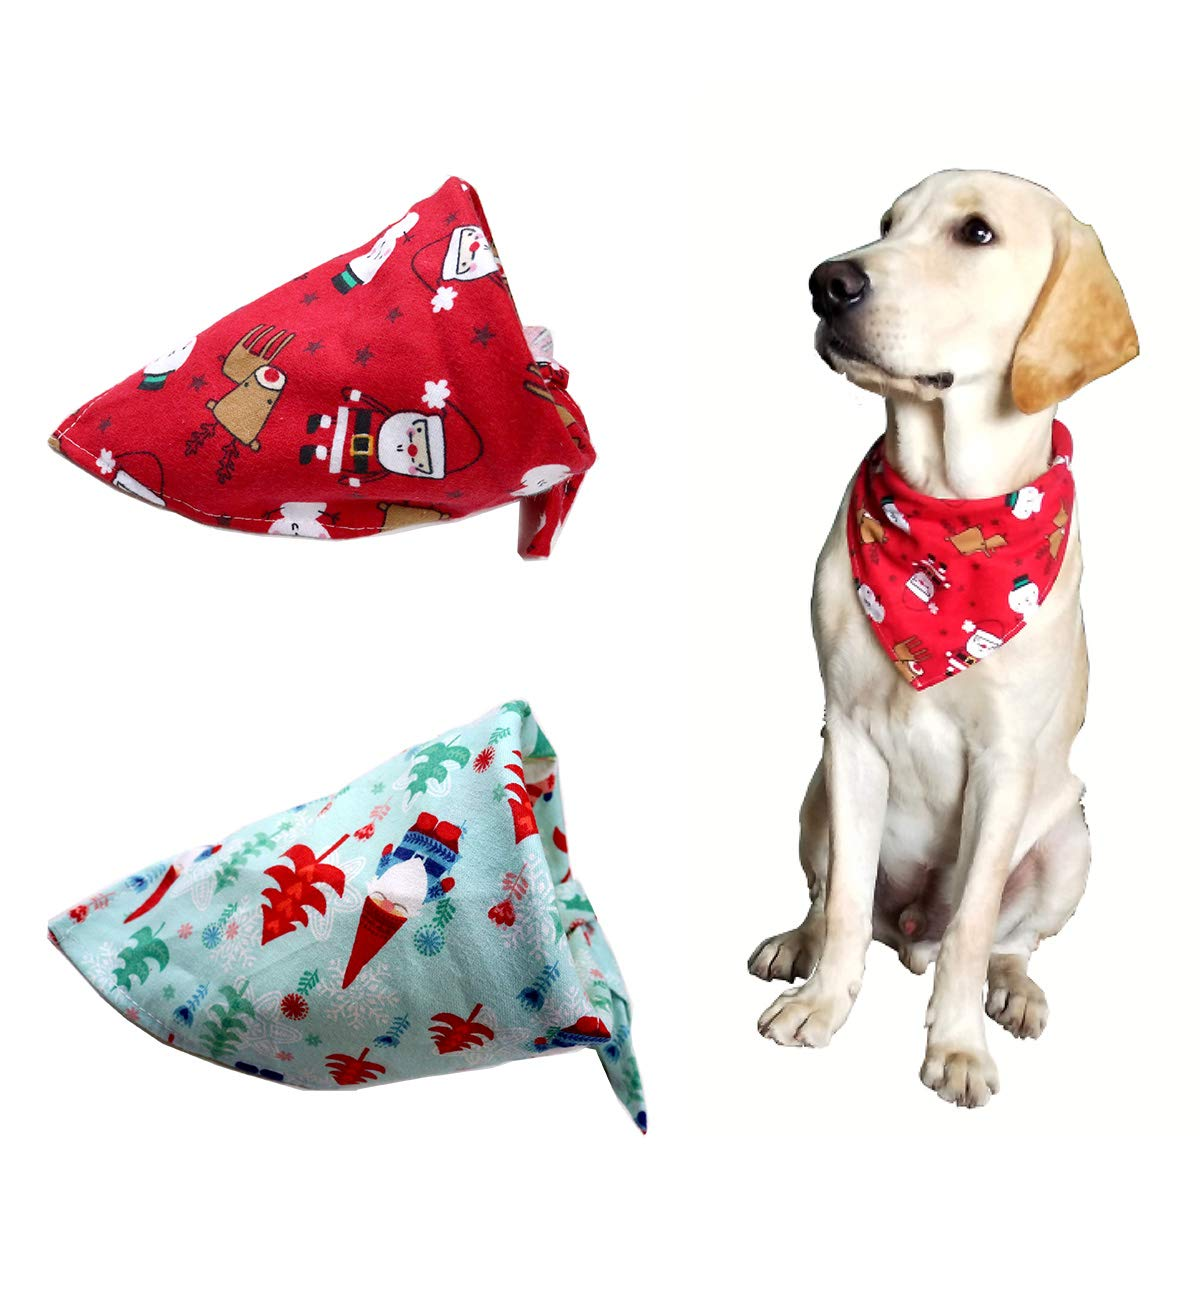 2pcs Pet Dog Christmas Bandanas Cotton Soft Snowman Gift Dog Triangle Fit for Middle and Large dogs Yagopet BA008-10